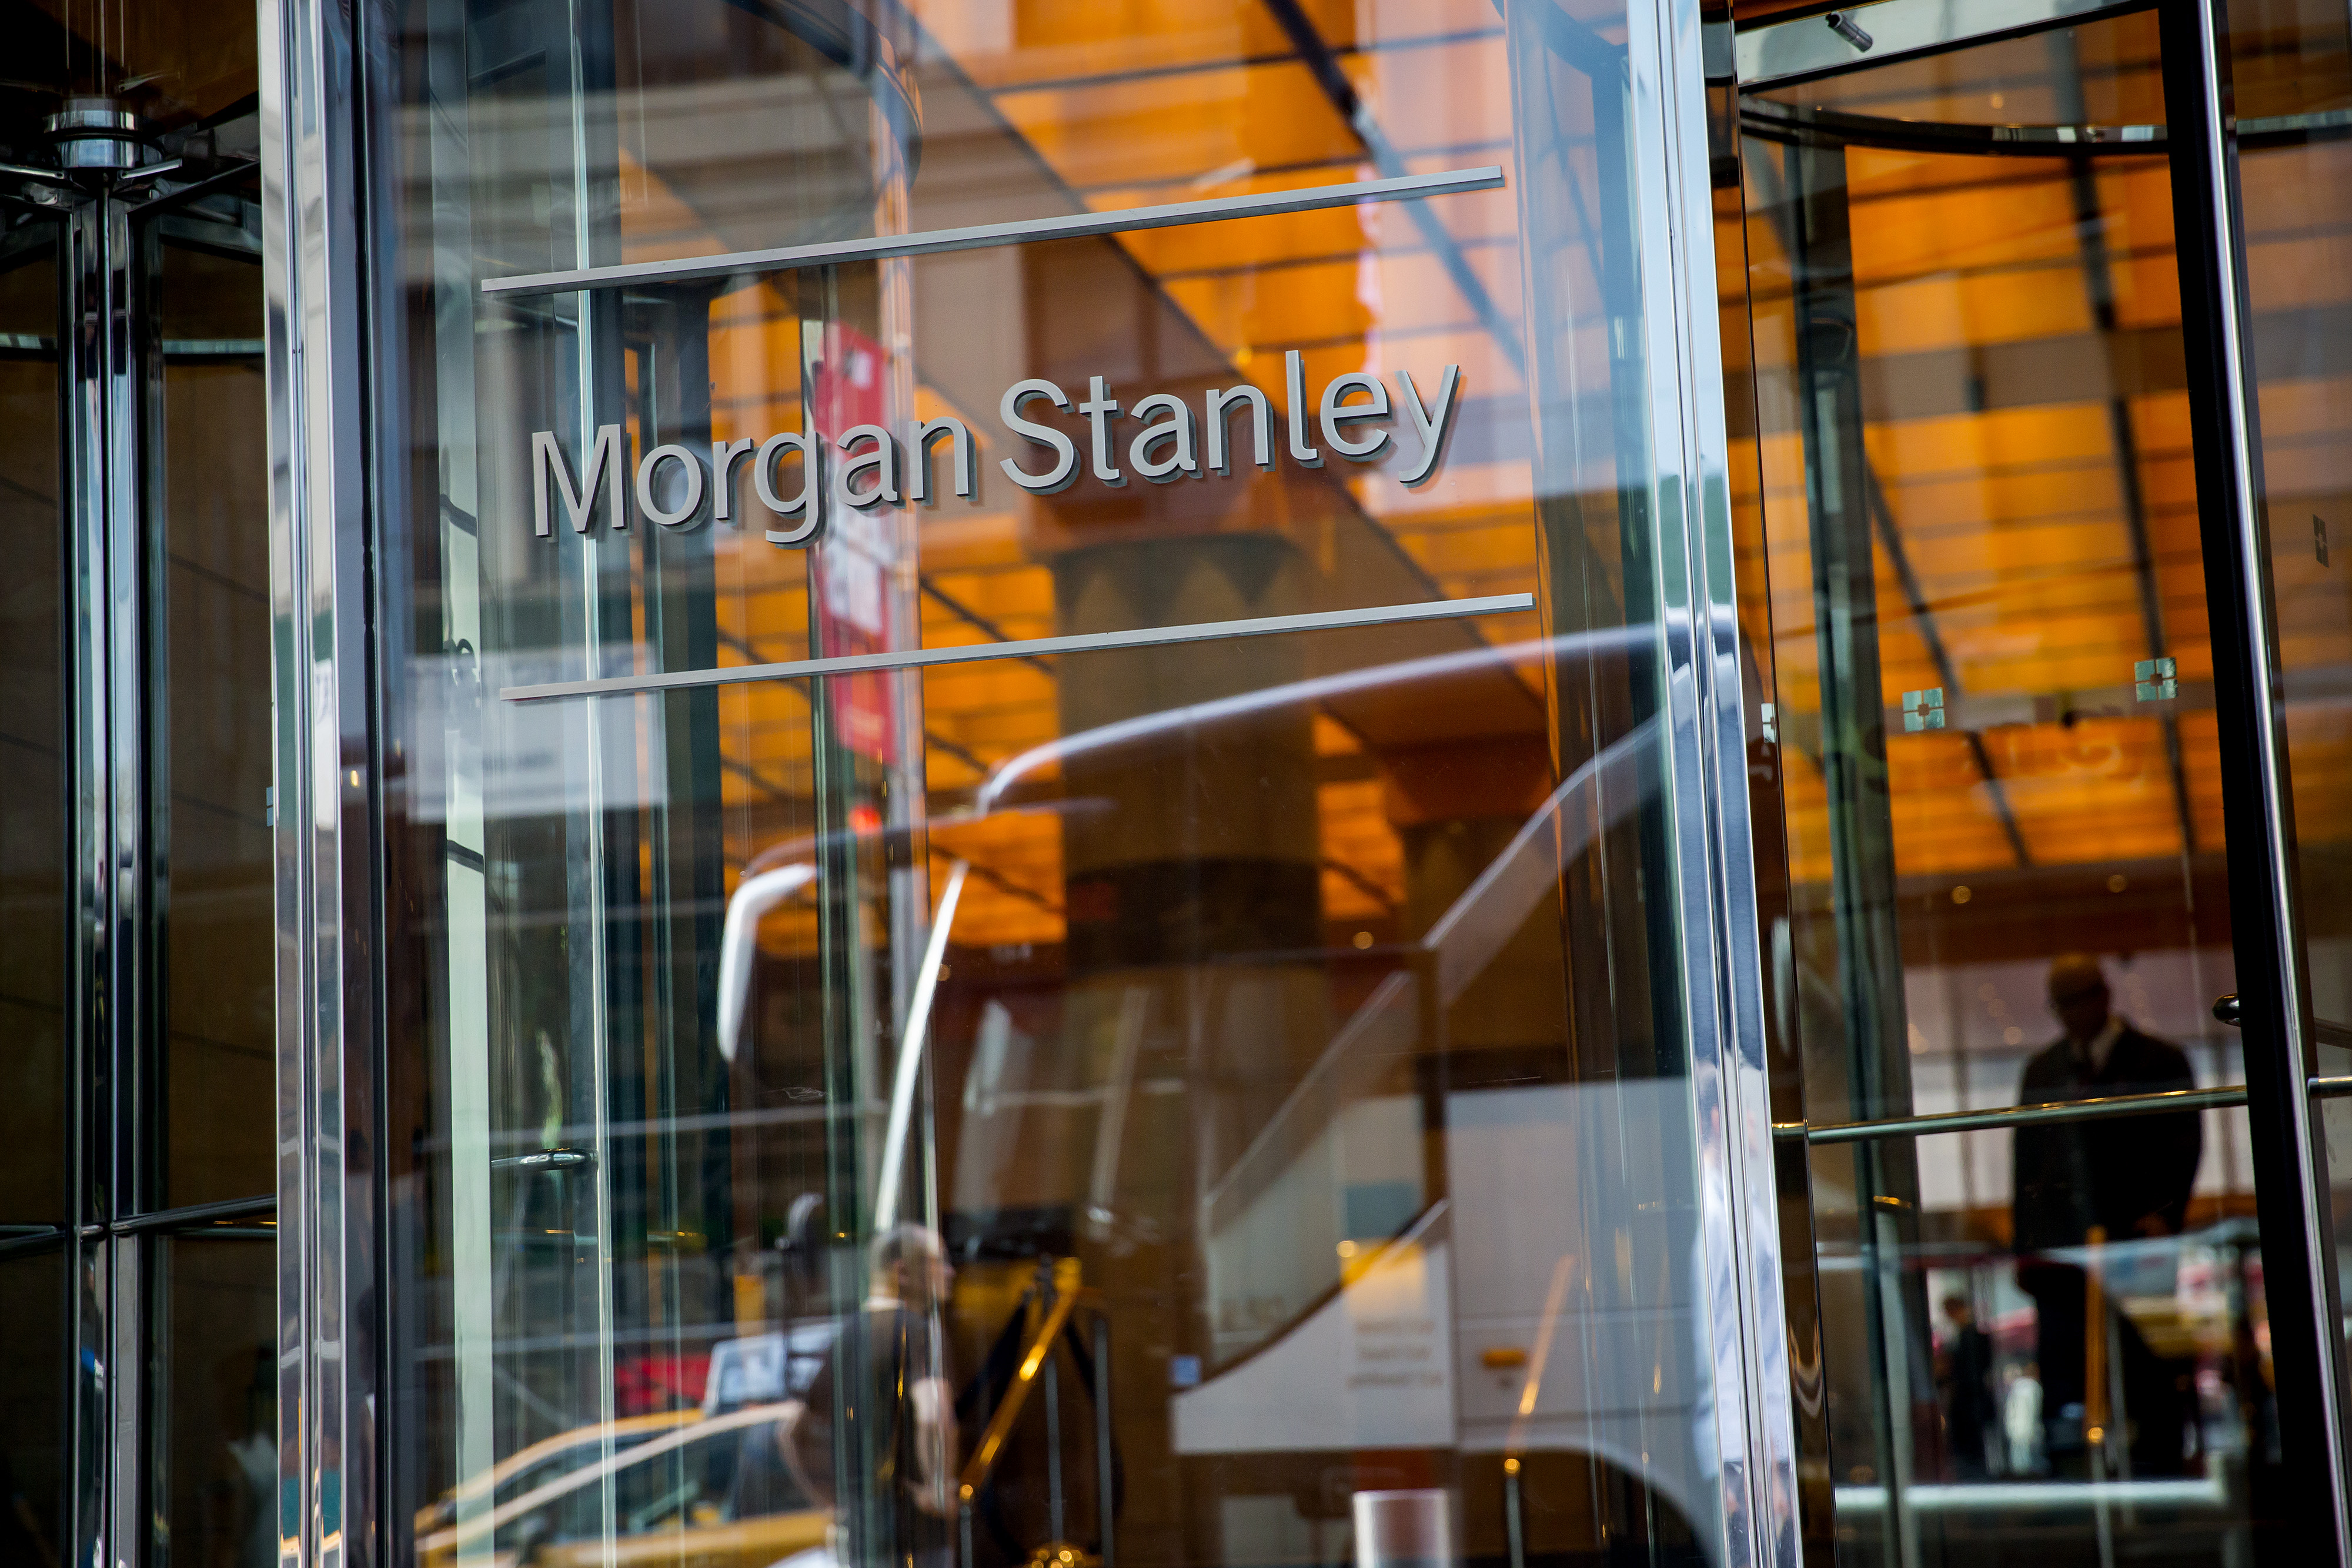 New advisor dashboard next in Morgan Stanley tech rollout